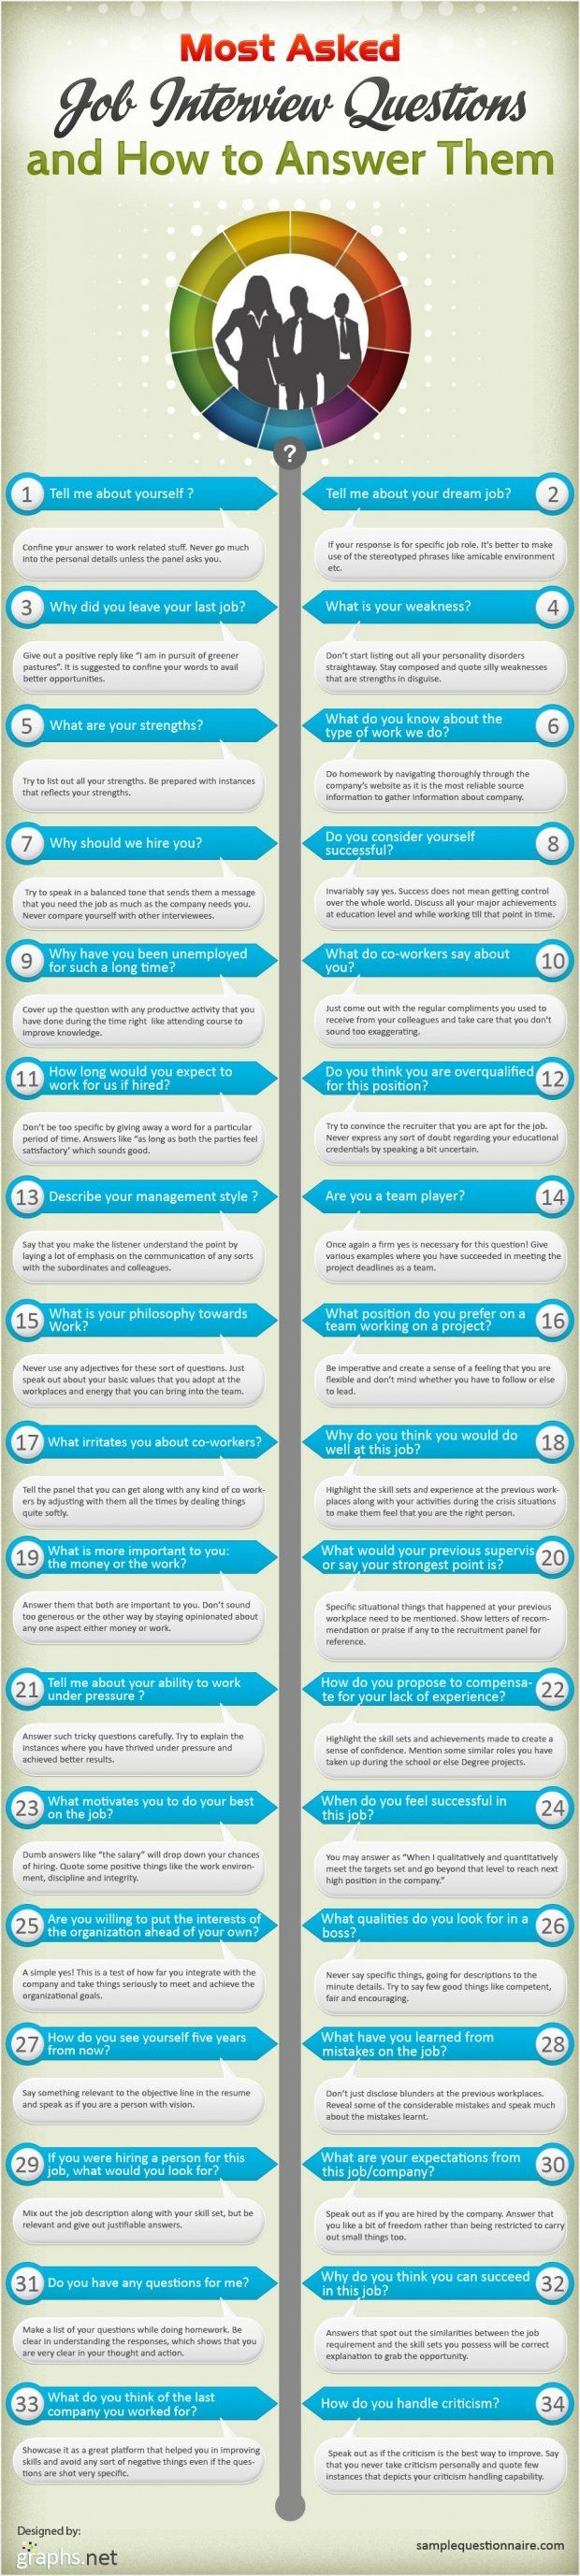 Most Asked Job Interview Questions and How to Answer Them   NerdGraph Infographics